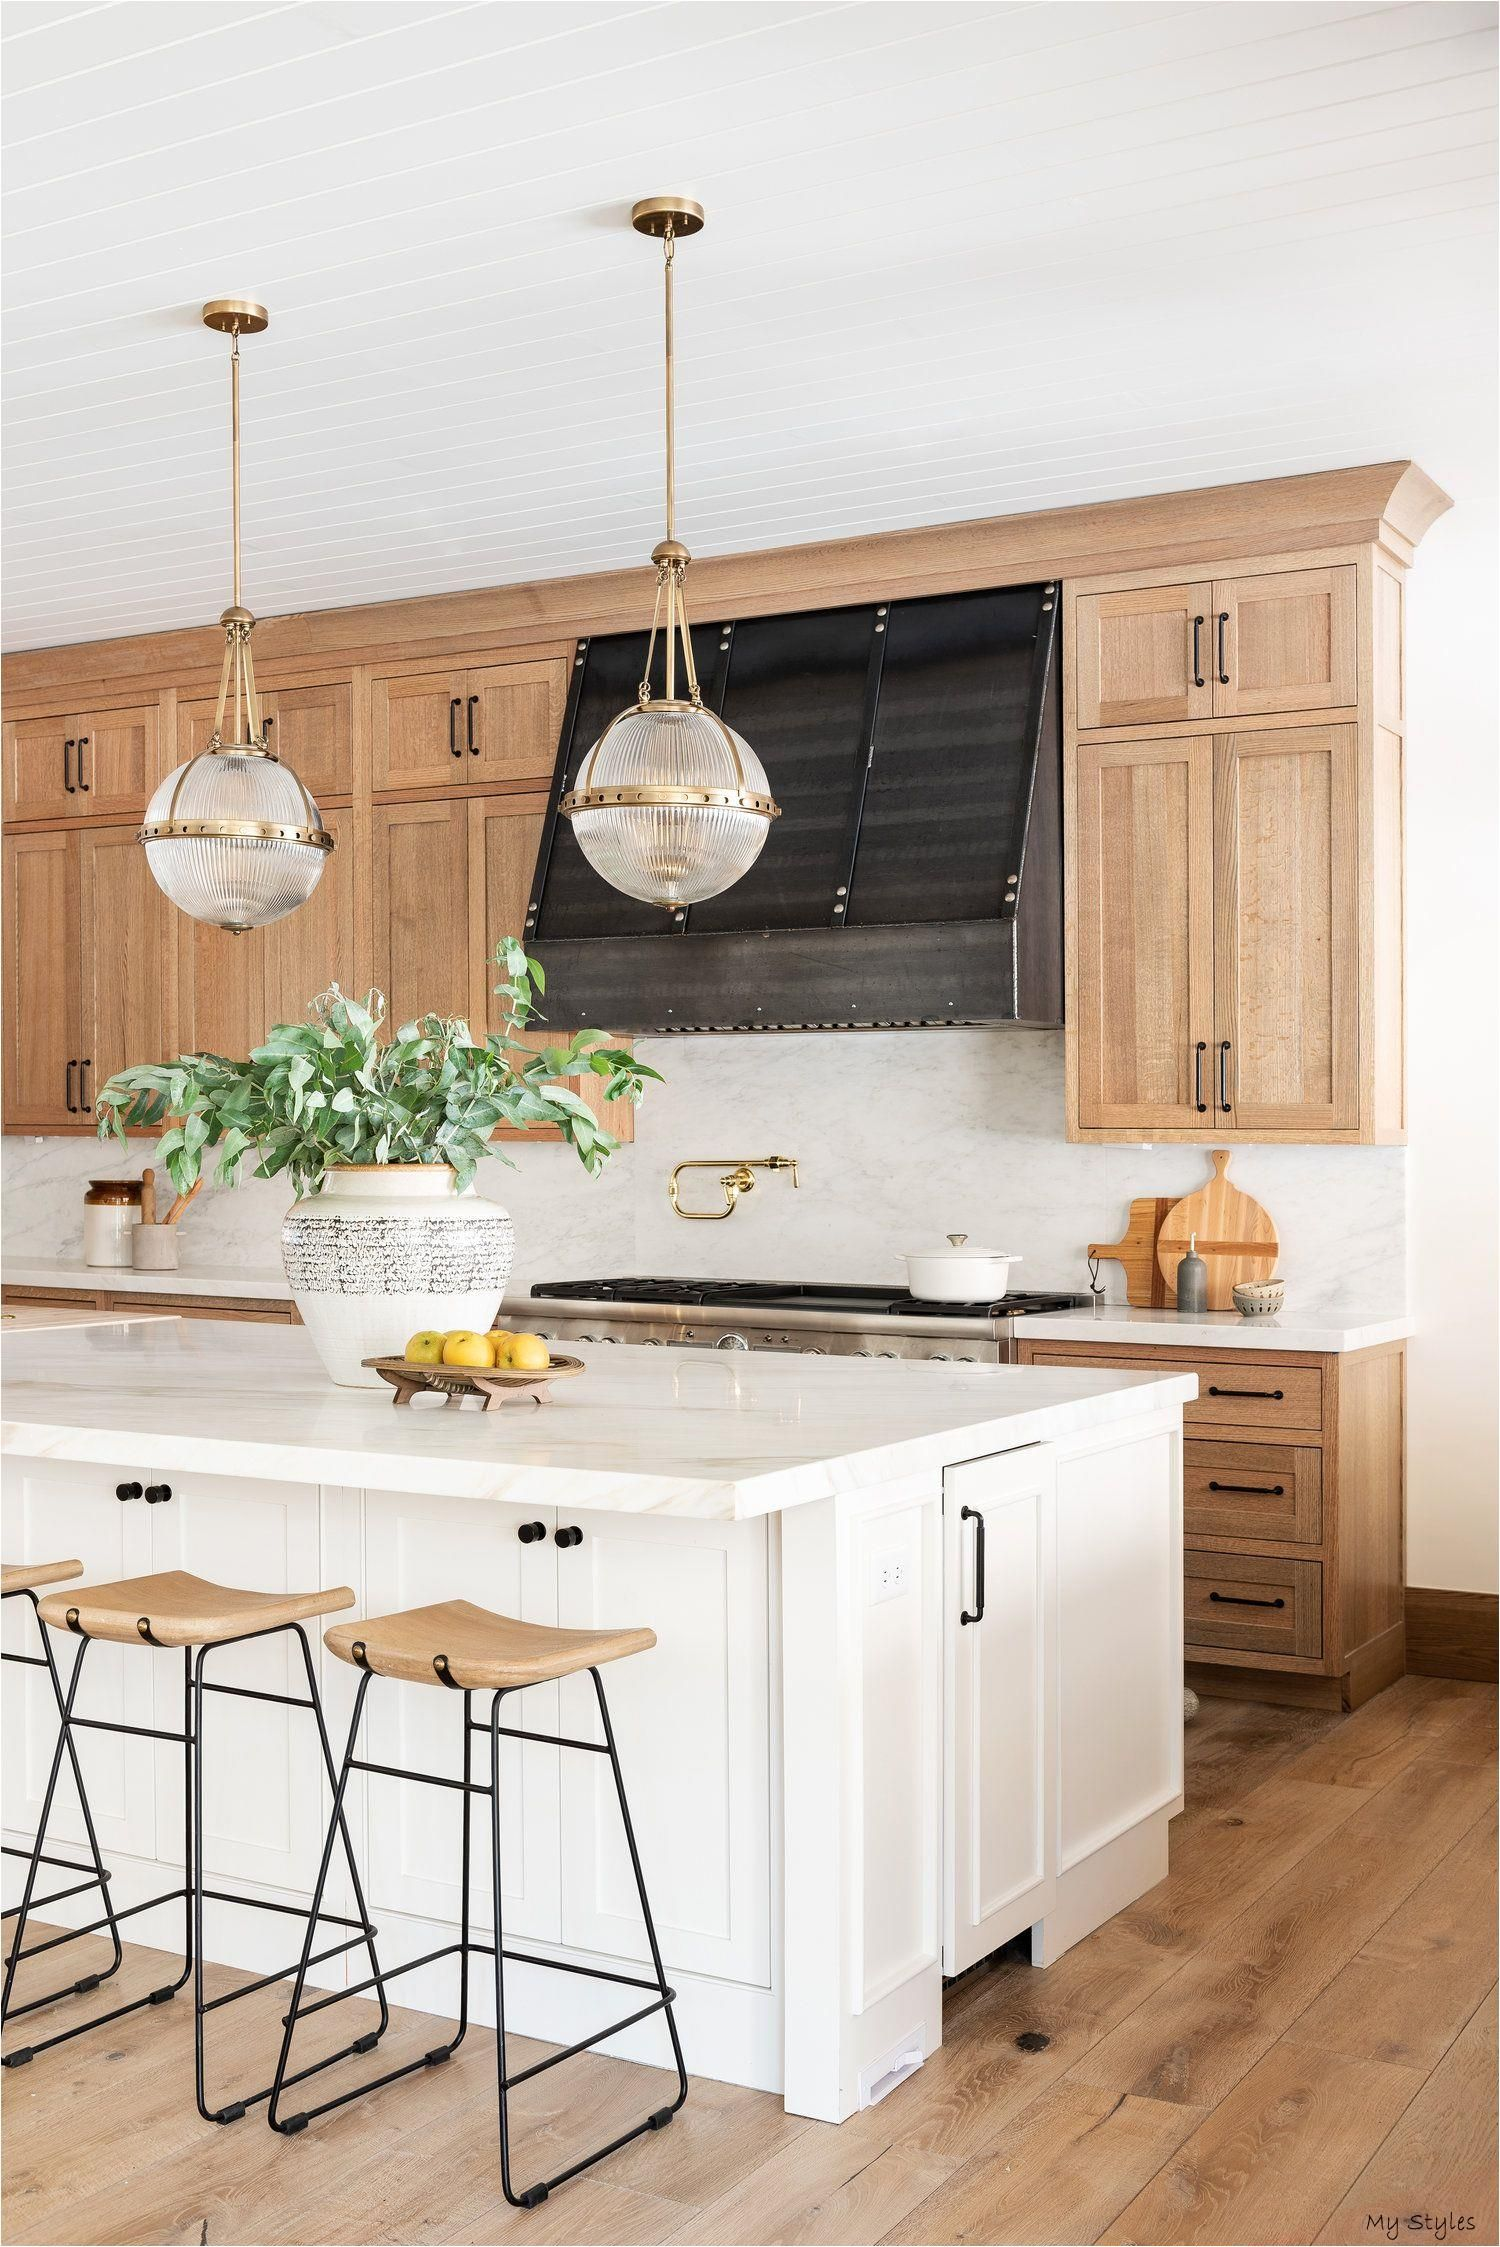 Nov 23 2019 Our Latest Kitchen Design Inspired By Natural Elements In 2020 Kitchen Design Decor Kitchen Trends Wood Kitchen Cabinets